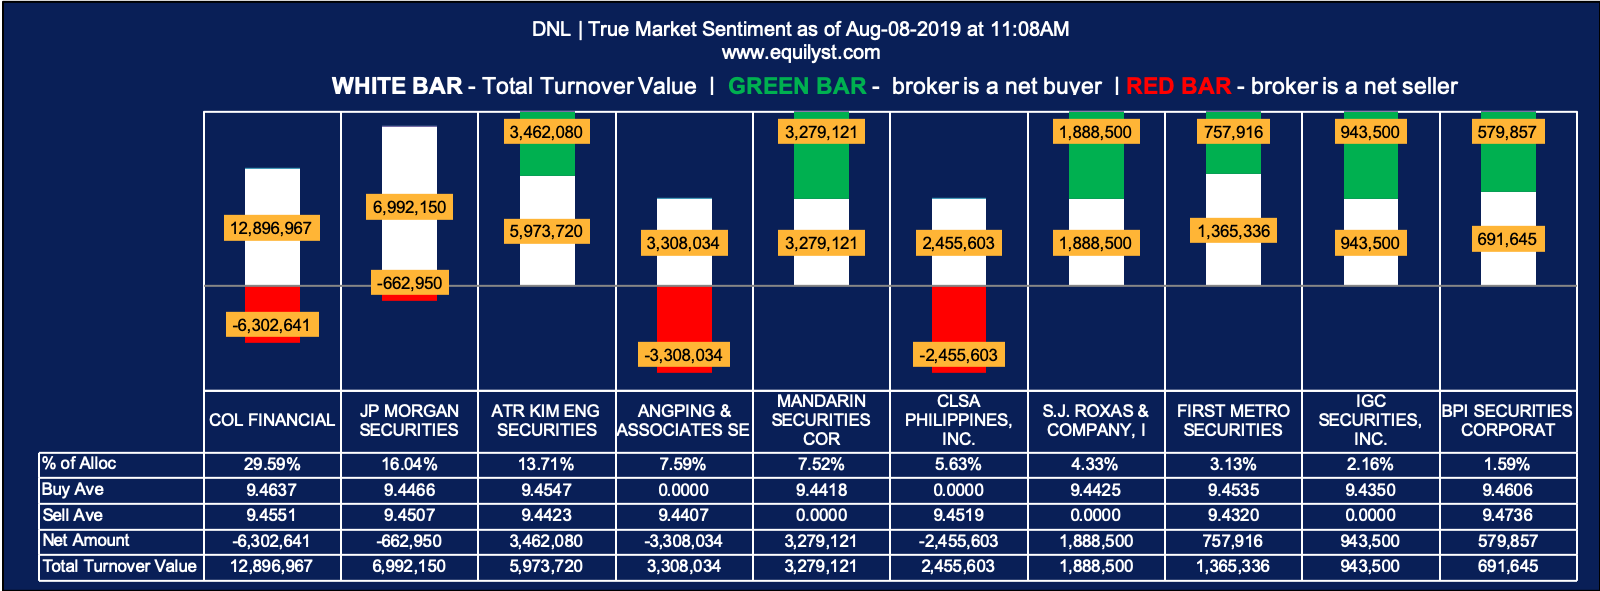 D and L Industries (DNL) - True Market Sentiment 1 - 8.8.2019